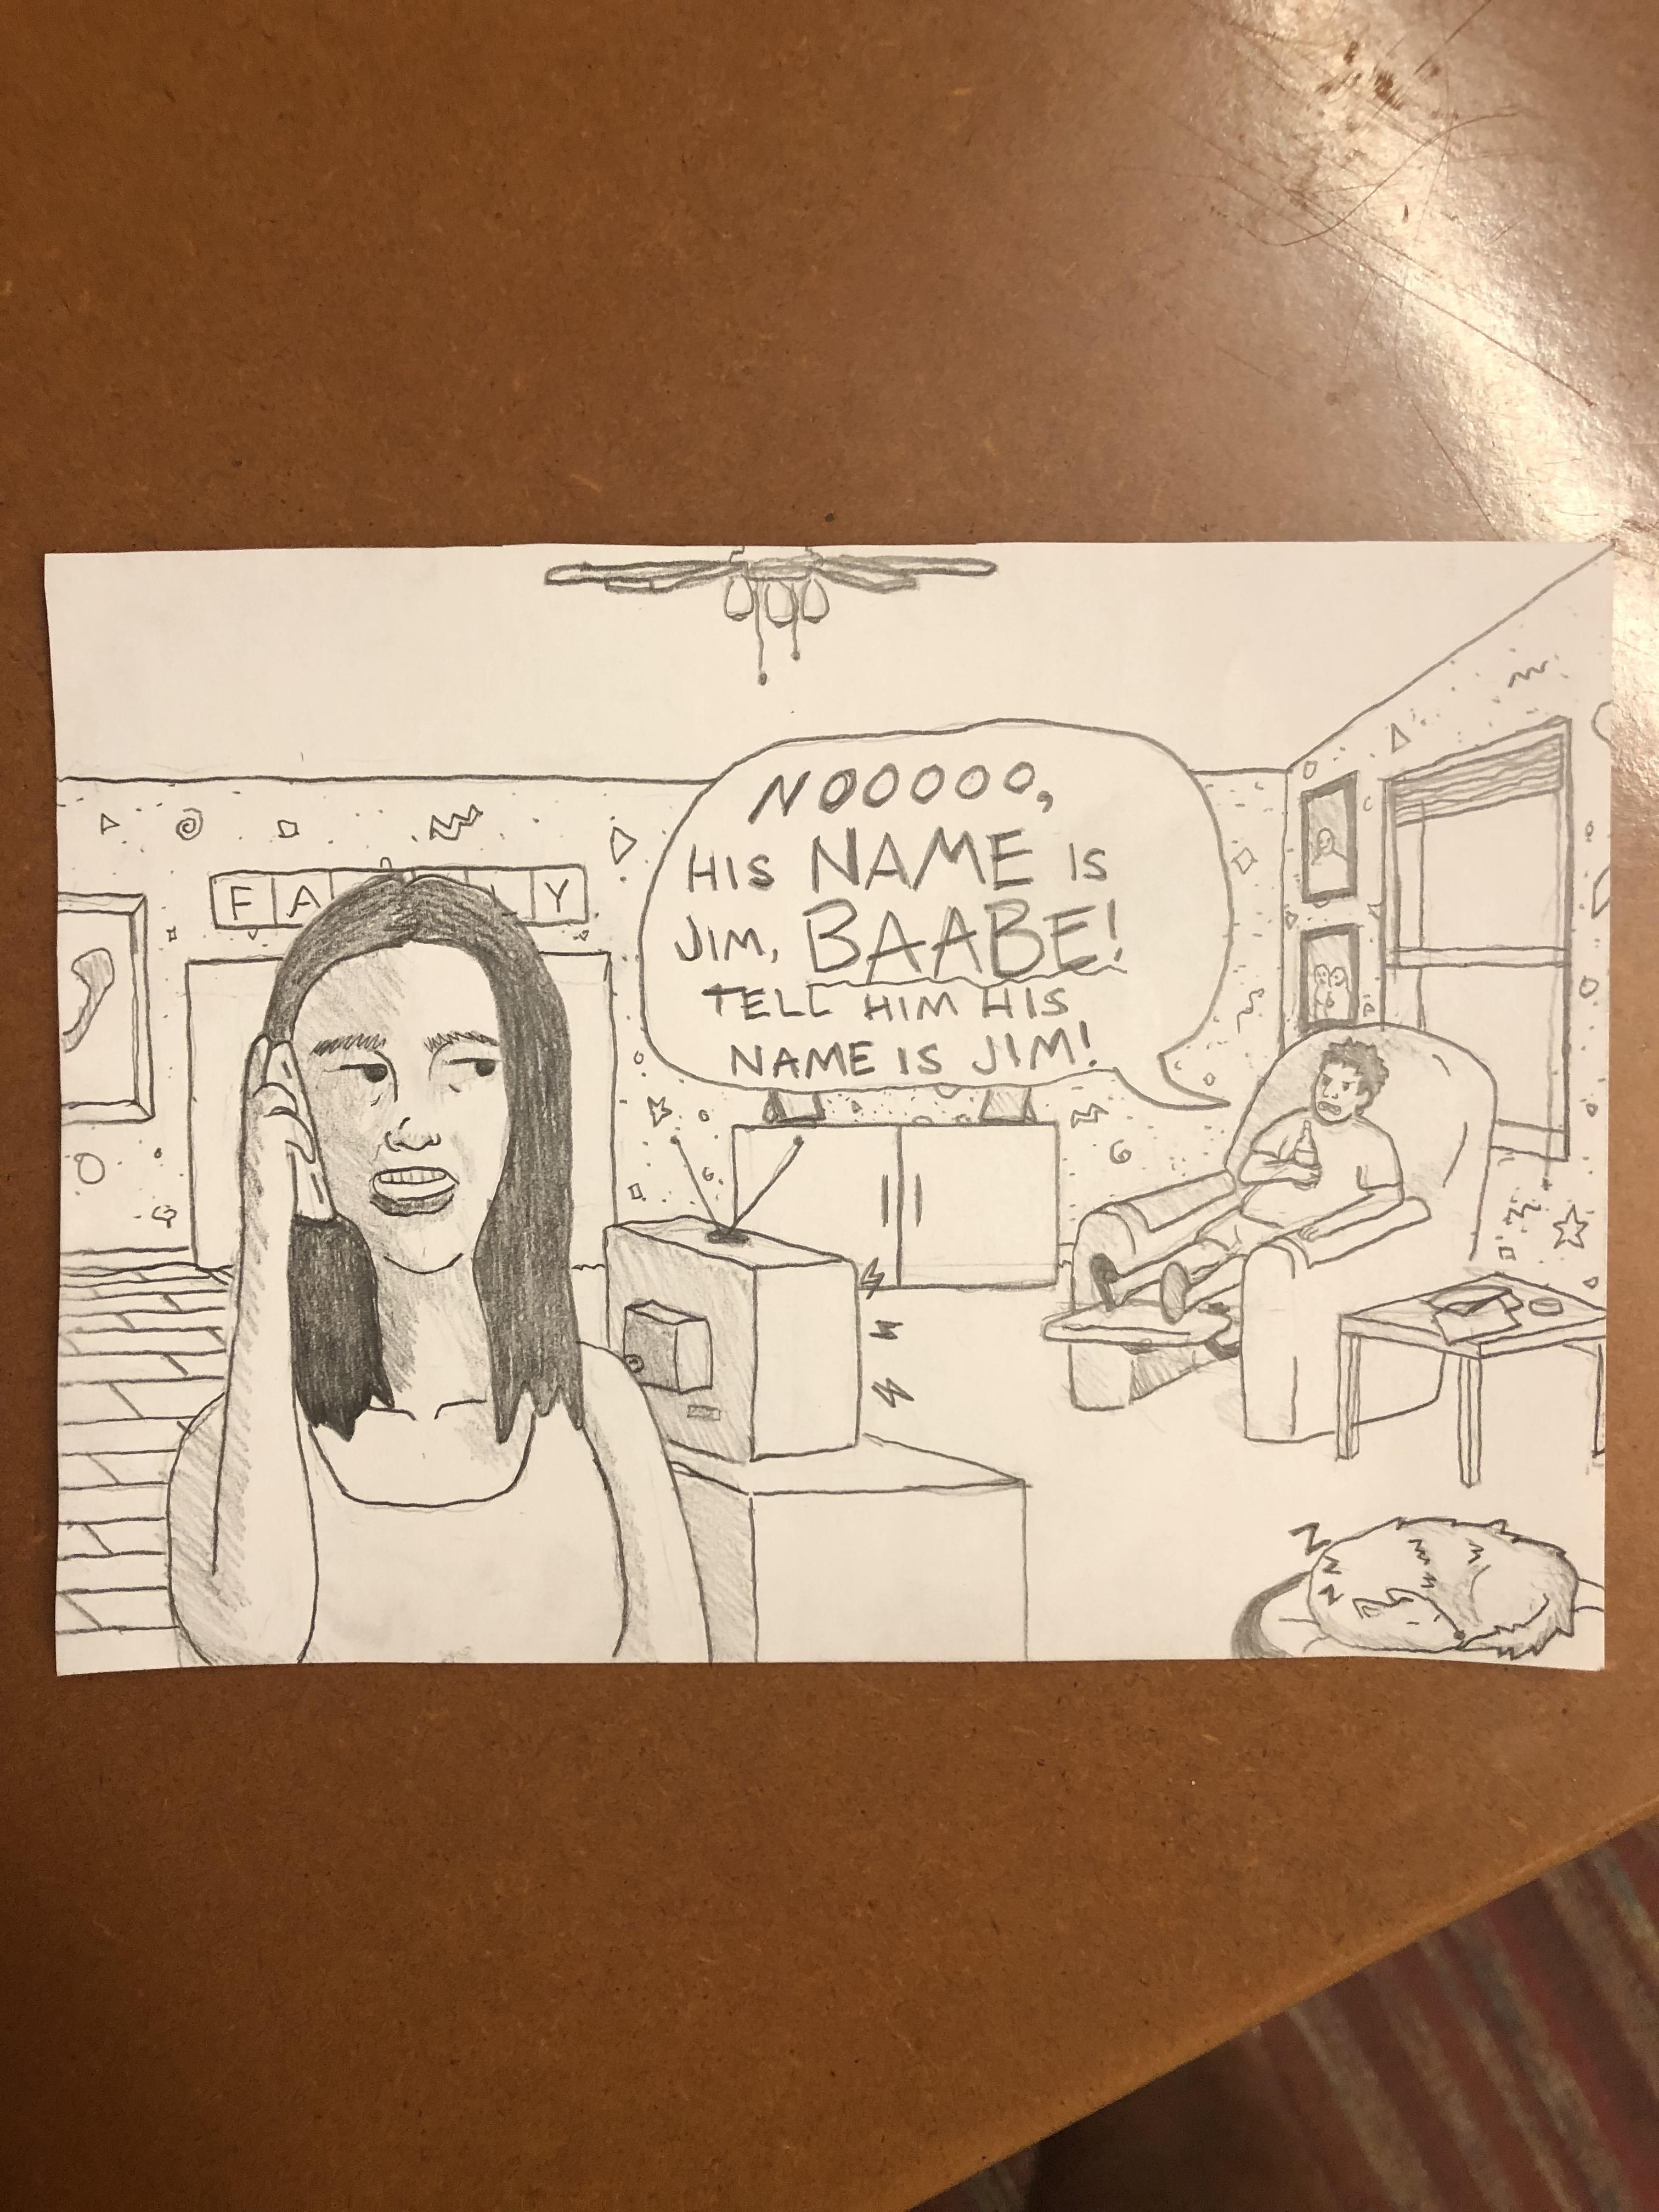 I work at a call center. Sometimes I like to try and draw my customers. Nothing better than the correcting background spouse.